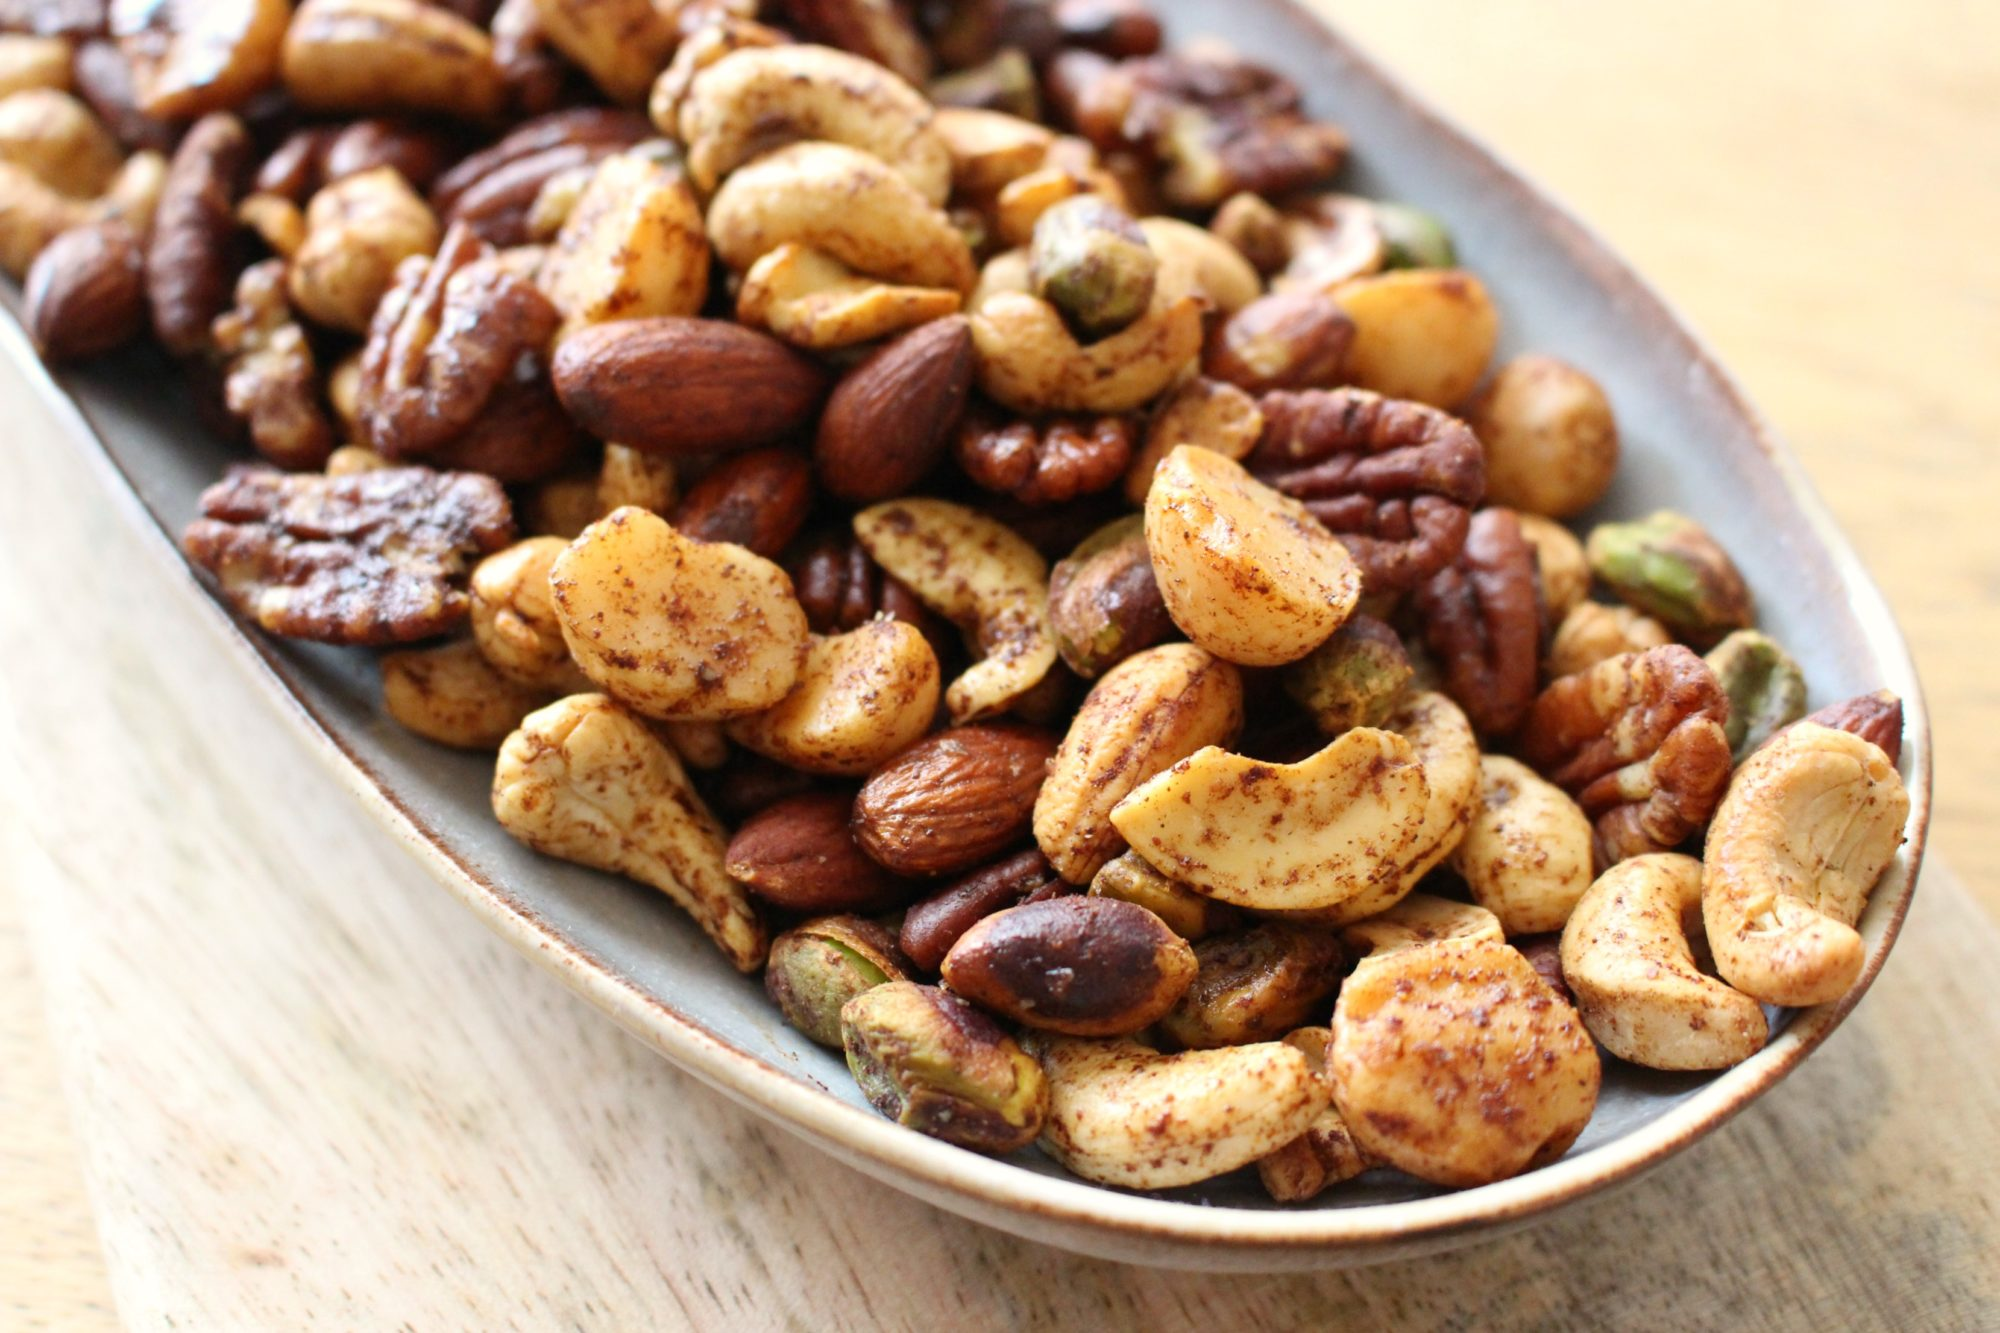 Going Nuts for Nuts This Winter